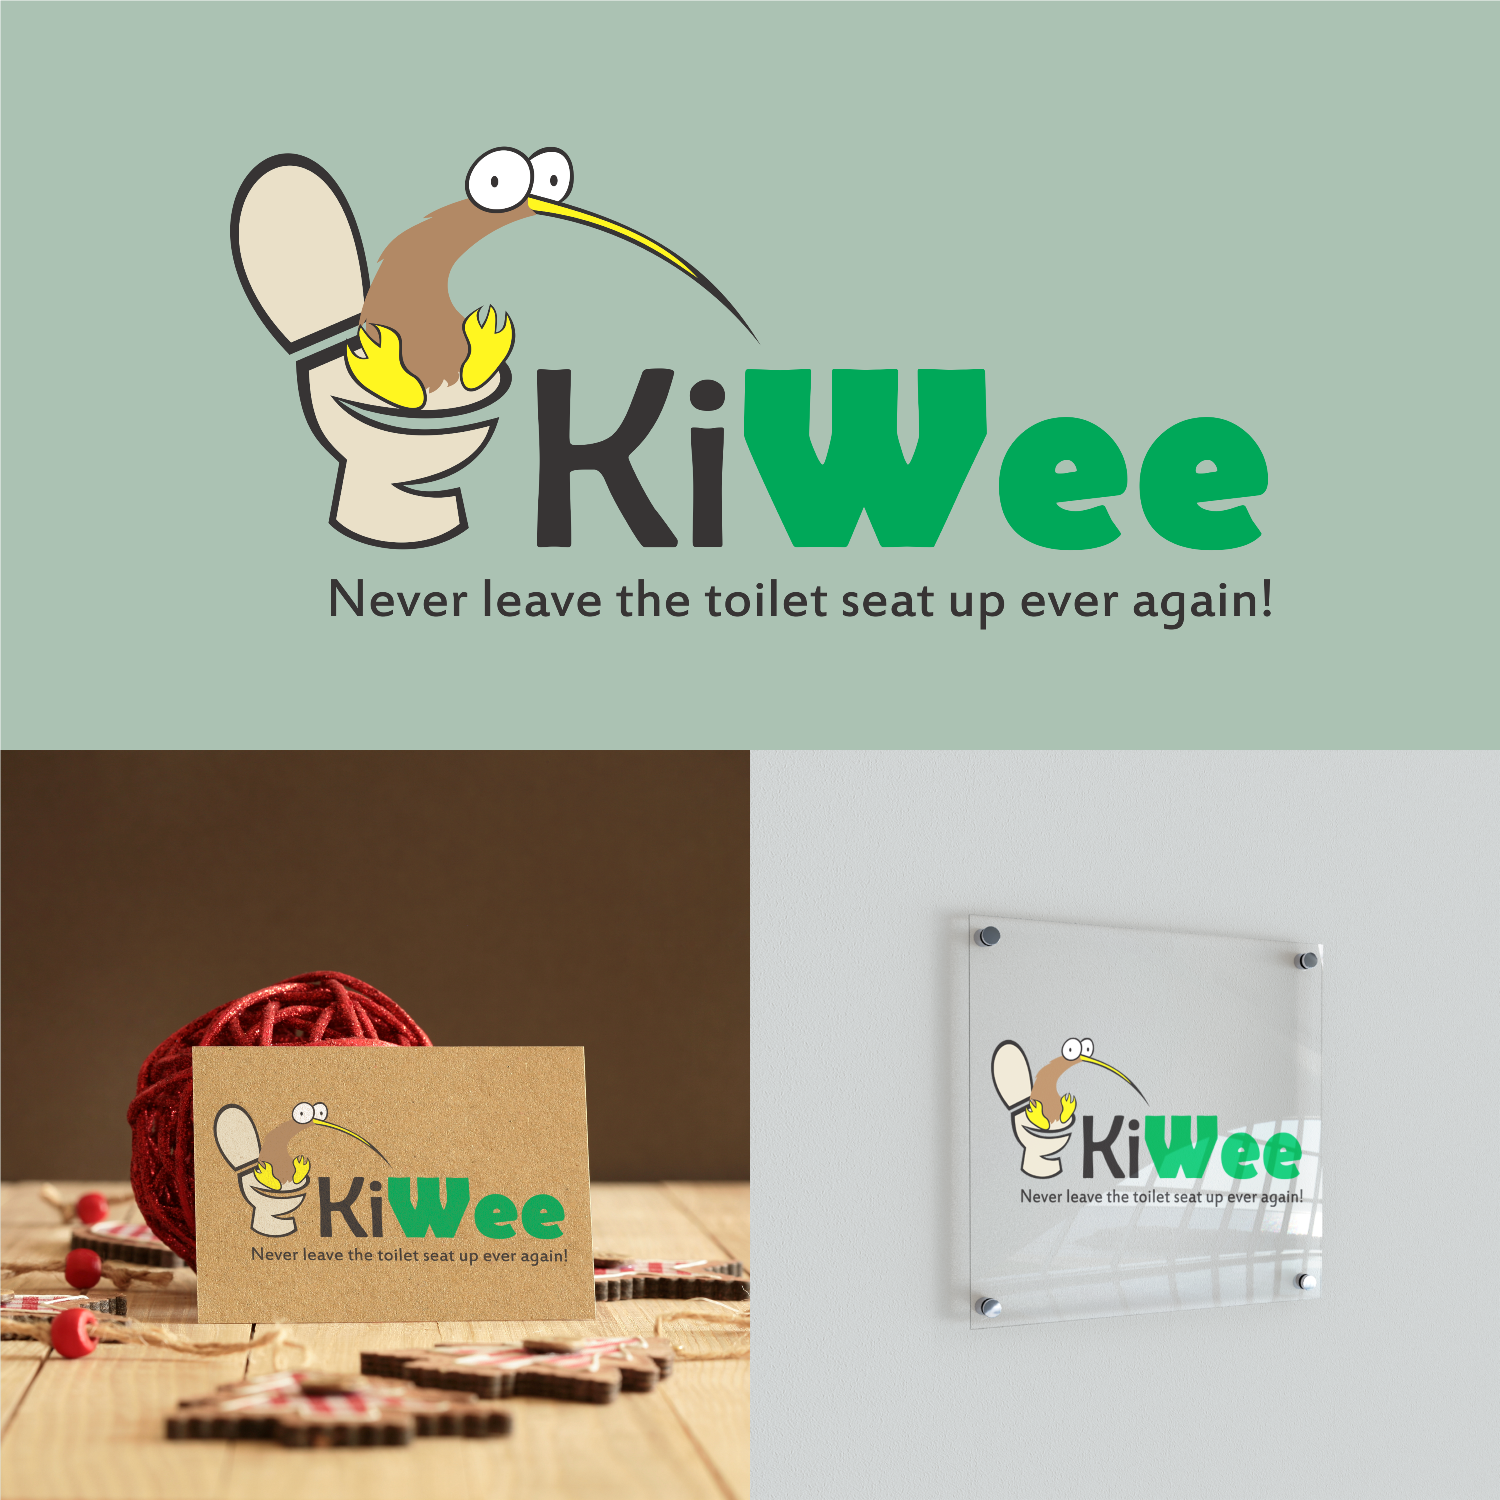 Personable, Colorful, It Company Logo Design for KiWee - Never leave ...